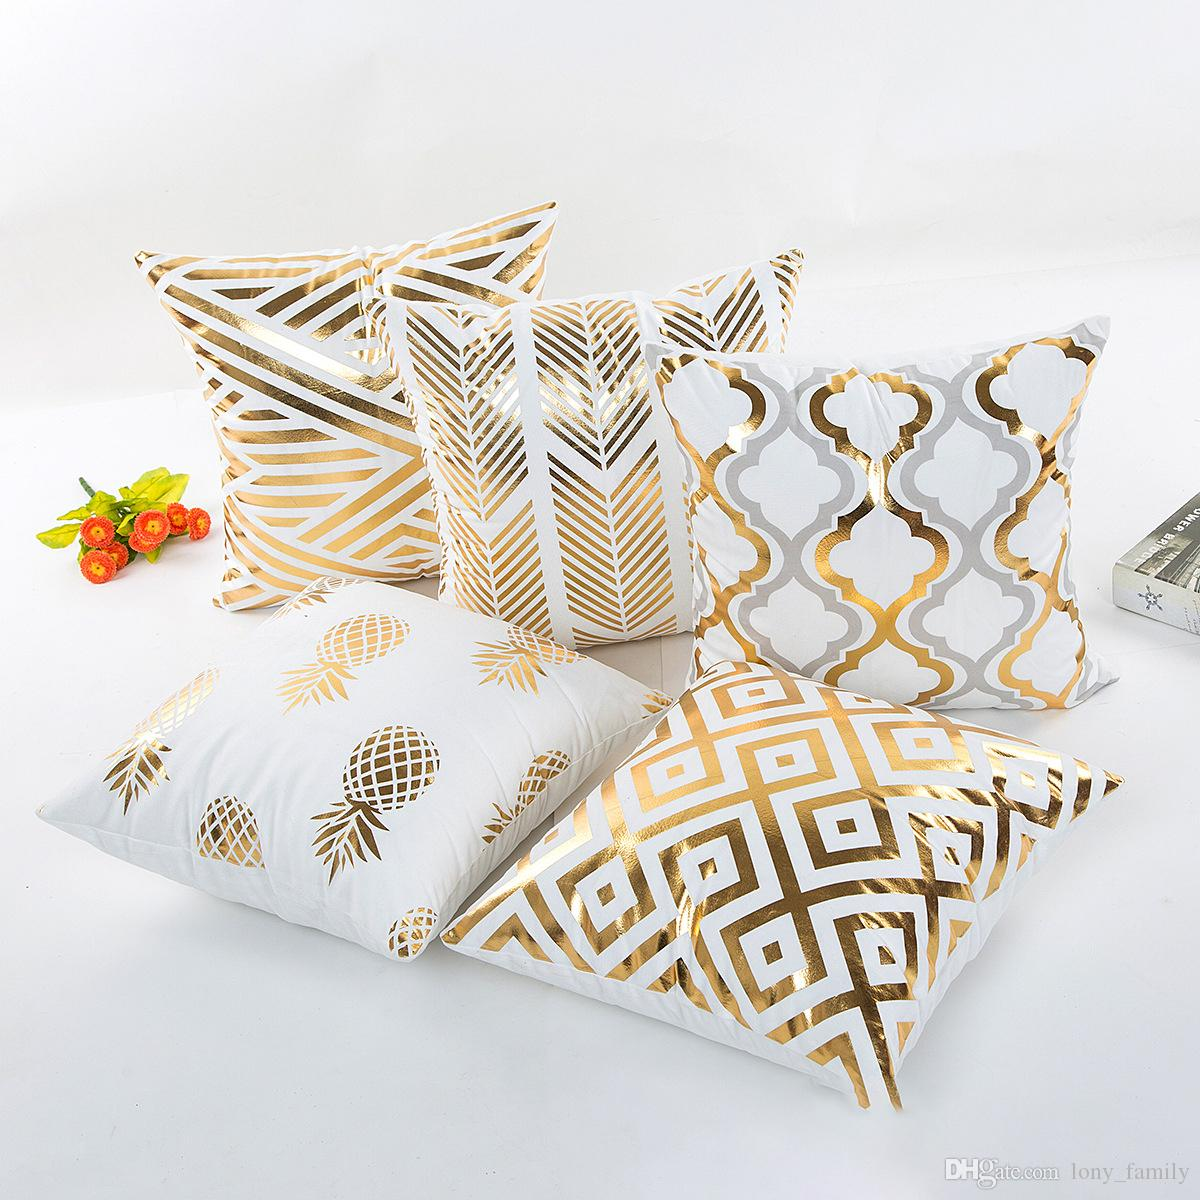 Wholesale 45*45cm 5 Styles Gold Patterns Cushion Covers Bedroom Seat Christmas Gifts Home Decor Kitchen Accessories Party Decoration